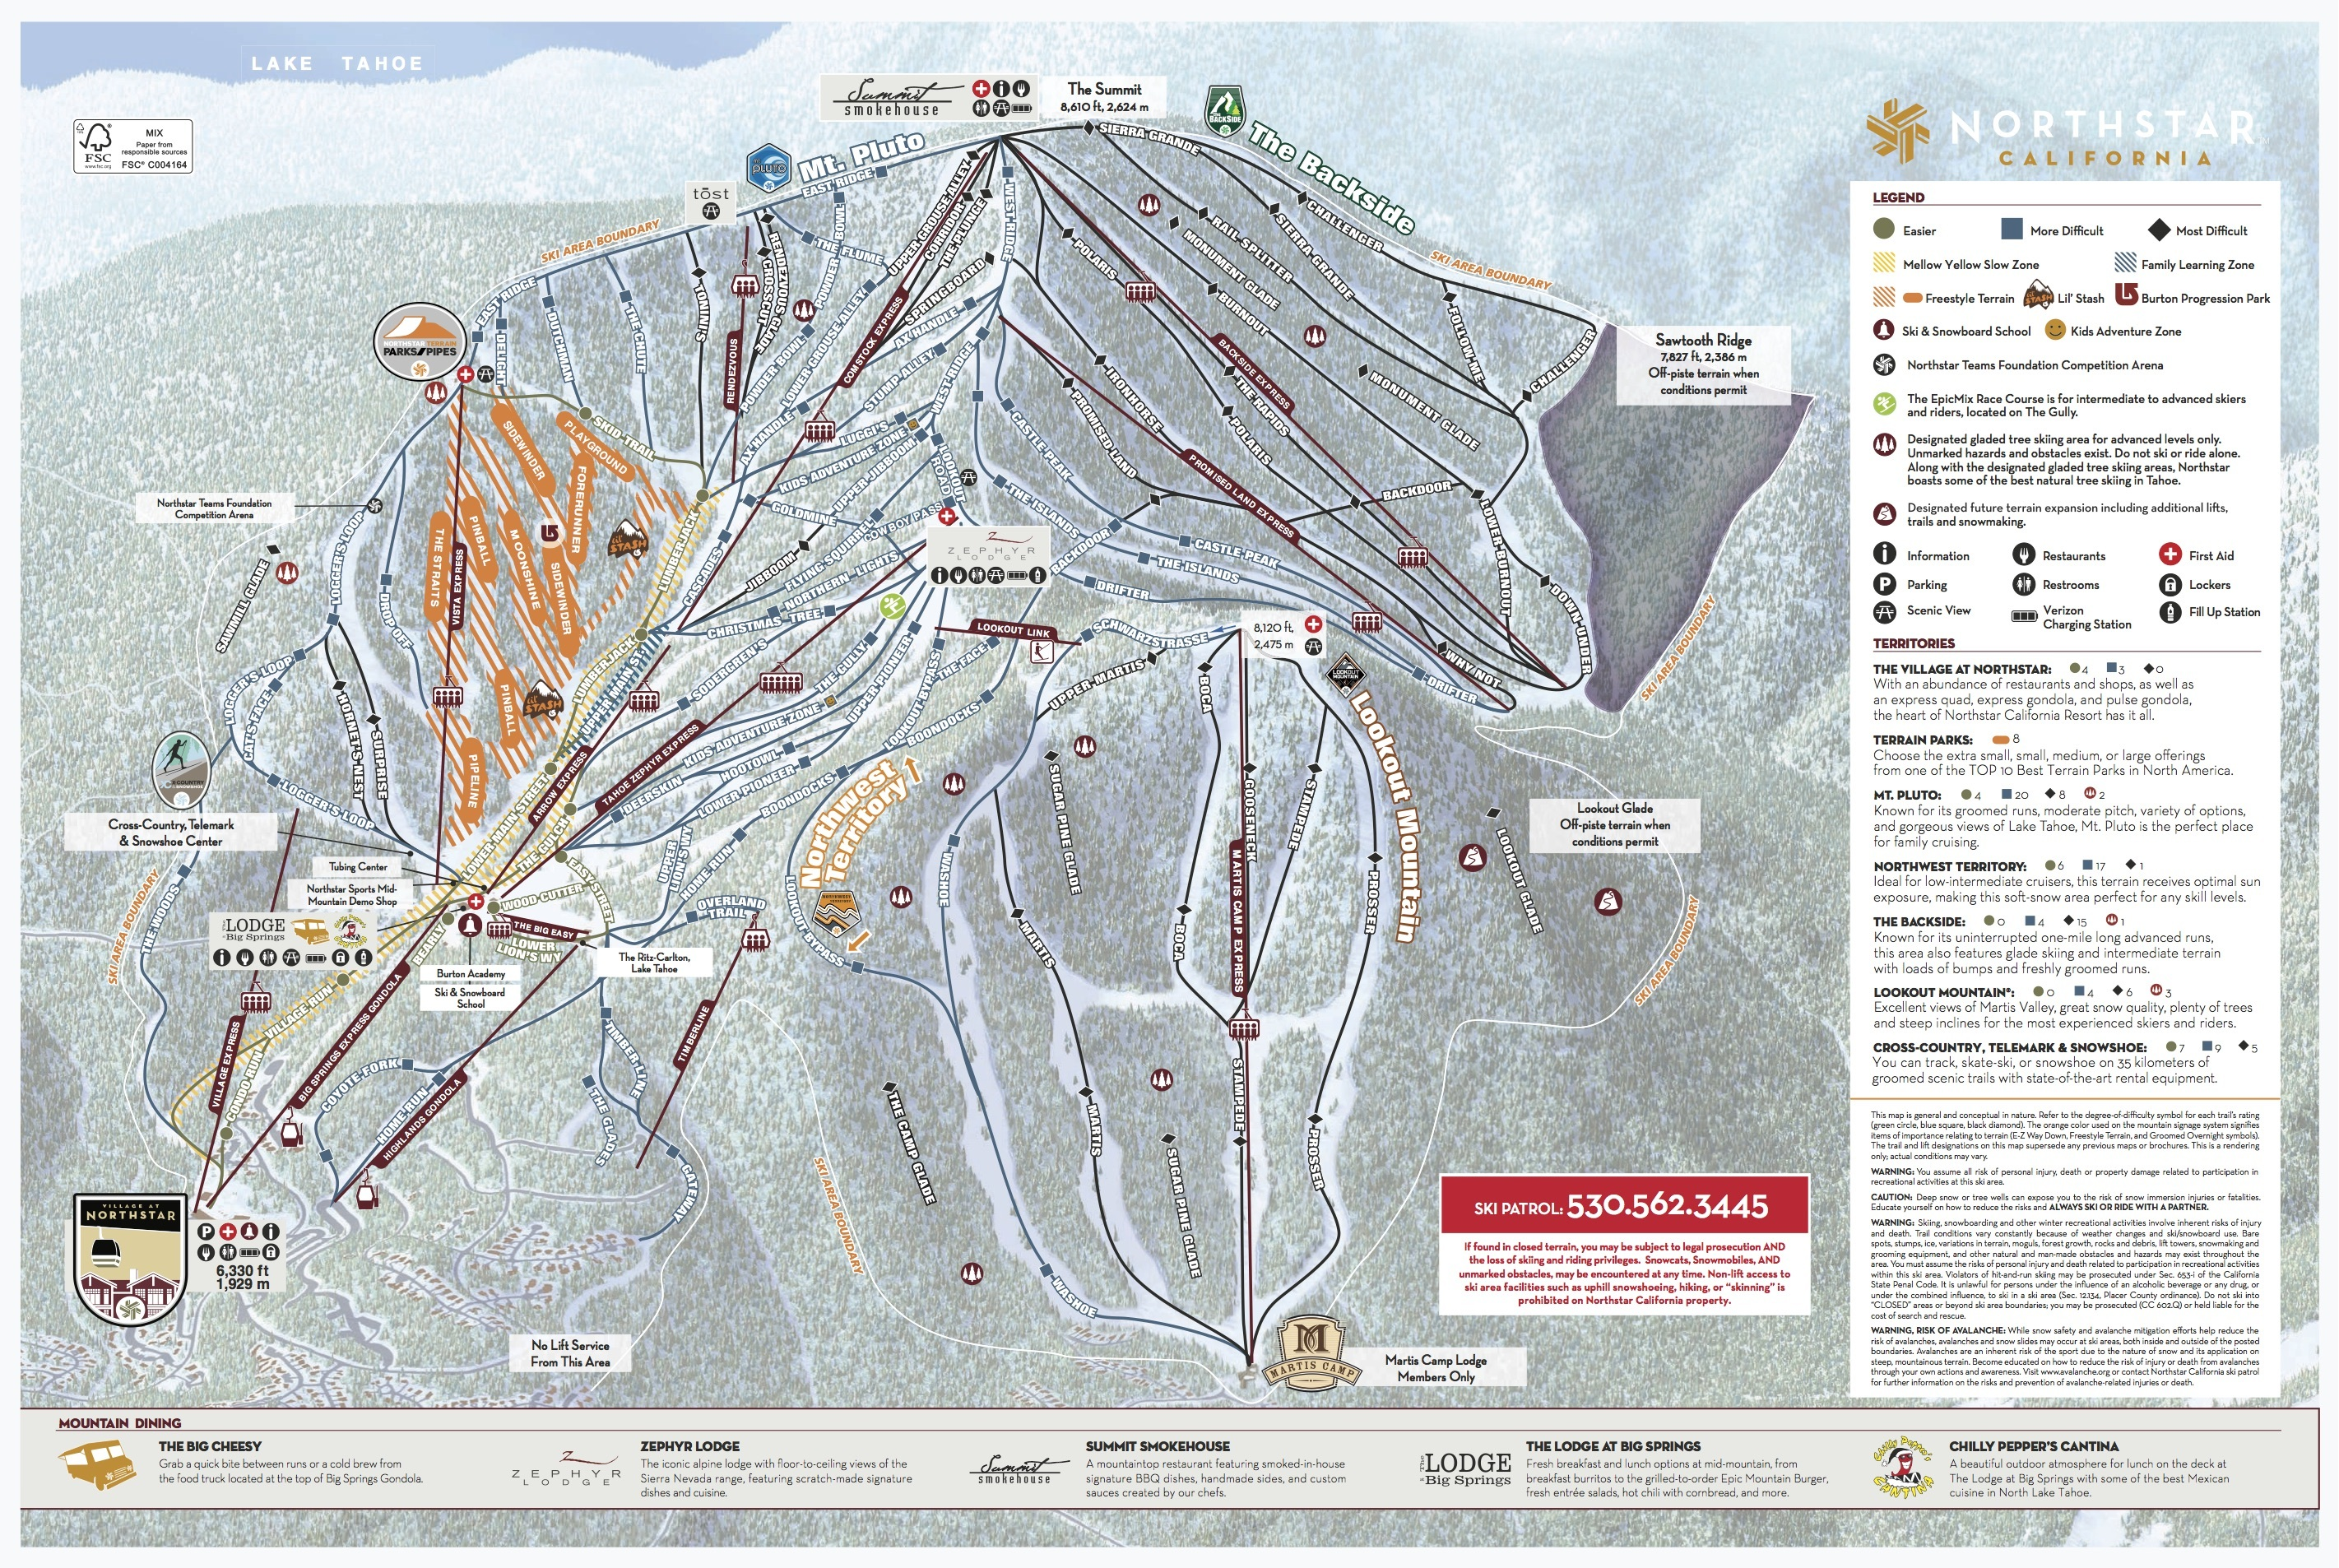 Northstar California Trail Map Onthesnow